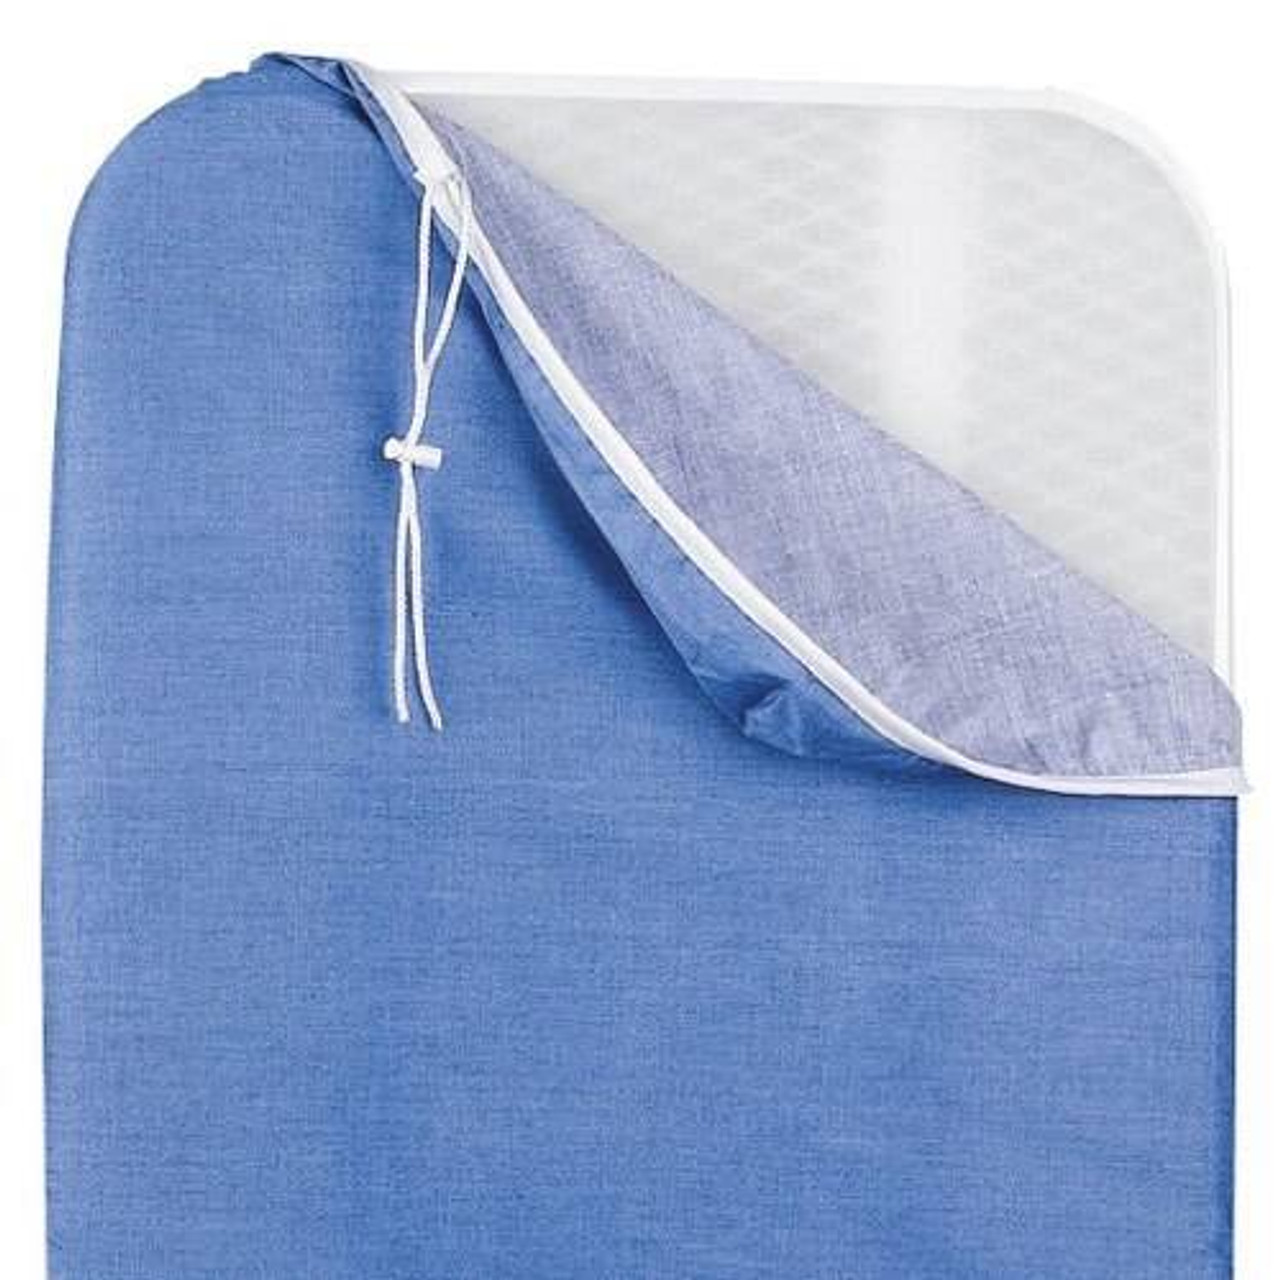 HOSPITALITY 1 SOURCE HOSPITALITY 1 SOURCE or IRONING BOARD COVERS or REPLACEMENT DRAWSTRING or BLUE or 6 PER CASE